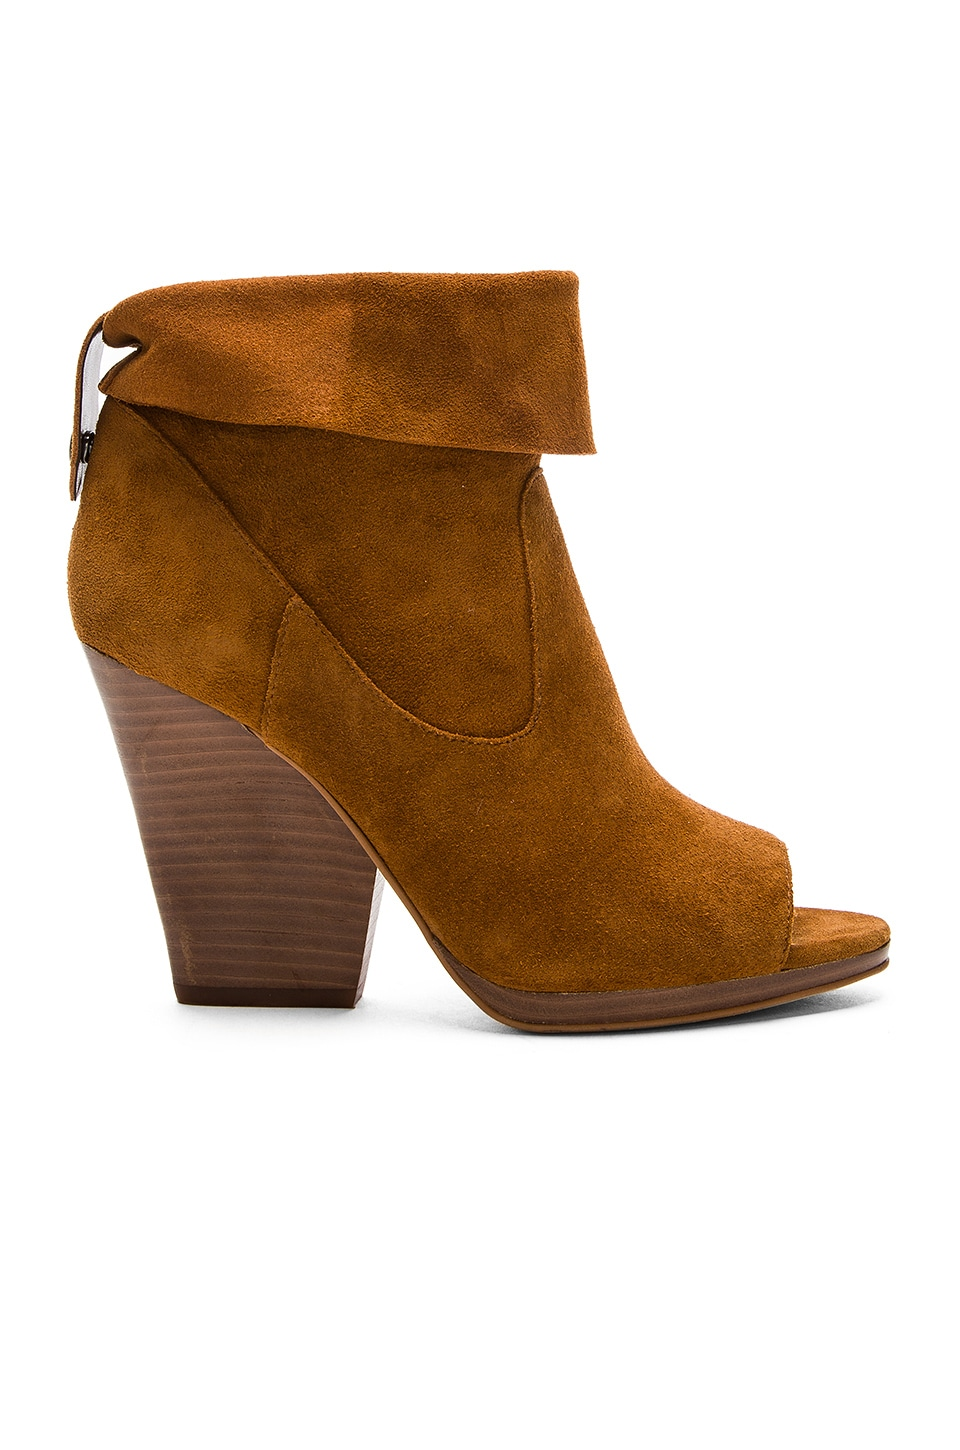 Photo of Judelle Booties by Vince Camuto shoes